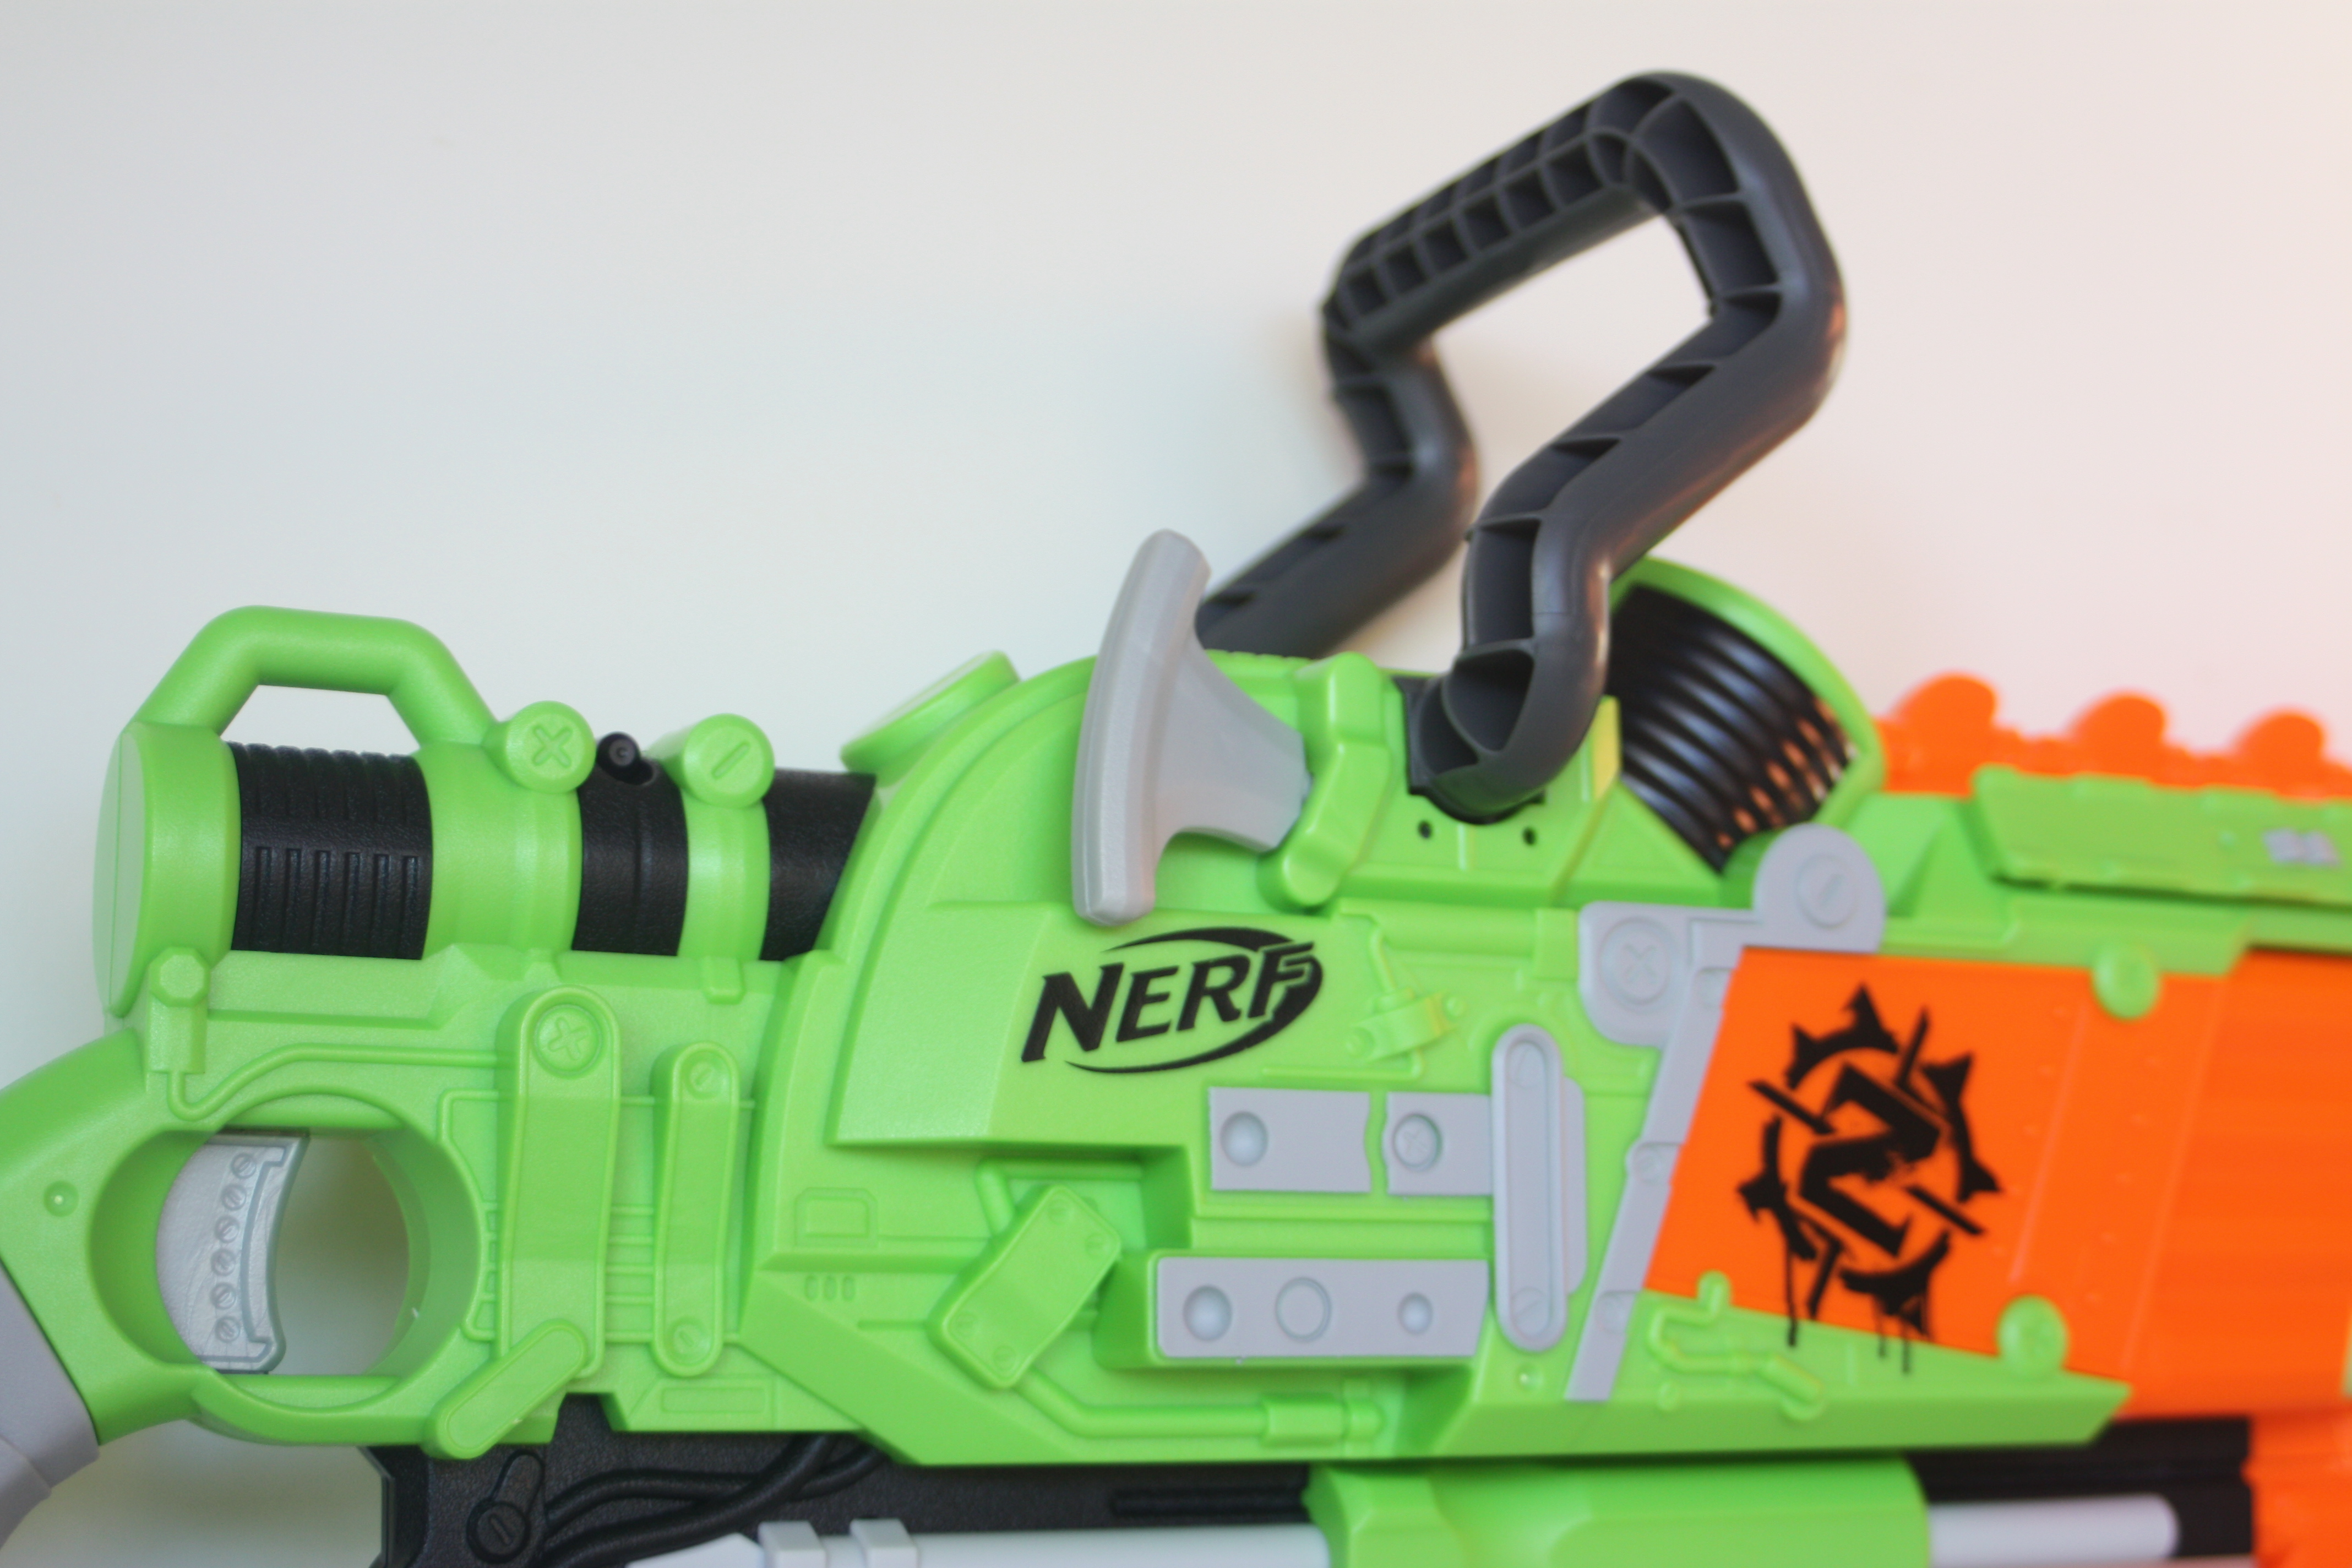 ... after all, chainsaws are menacing. I love the detailing Hasbro has put  into this blaster as it perfectly fits the theme of a zombie apocalyptic  weapon.